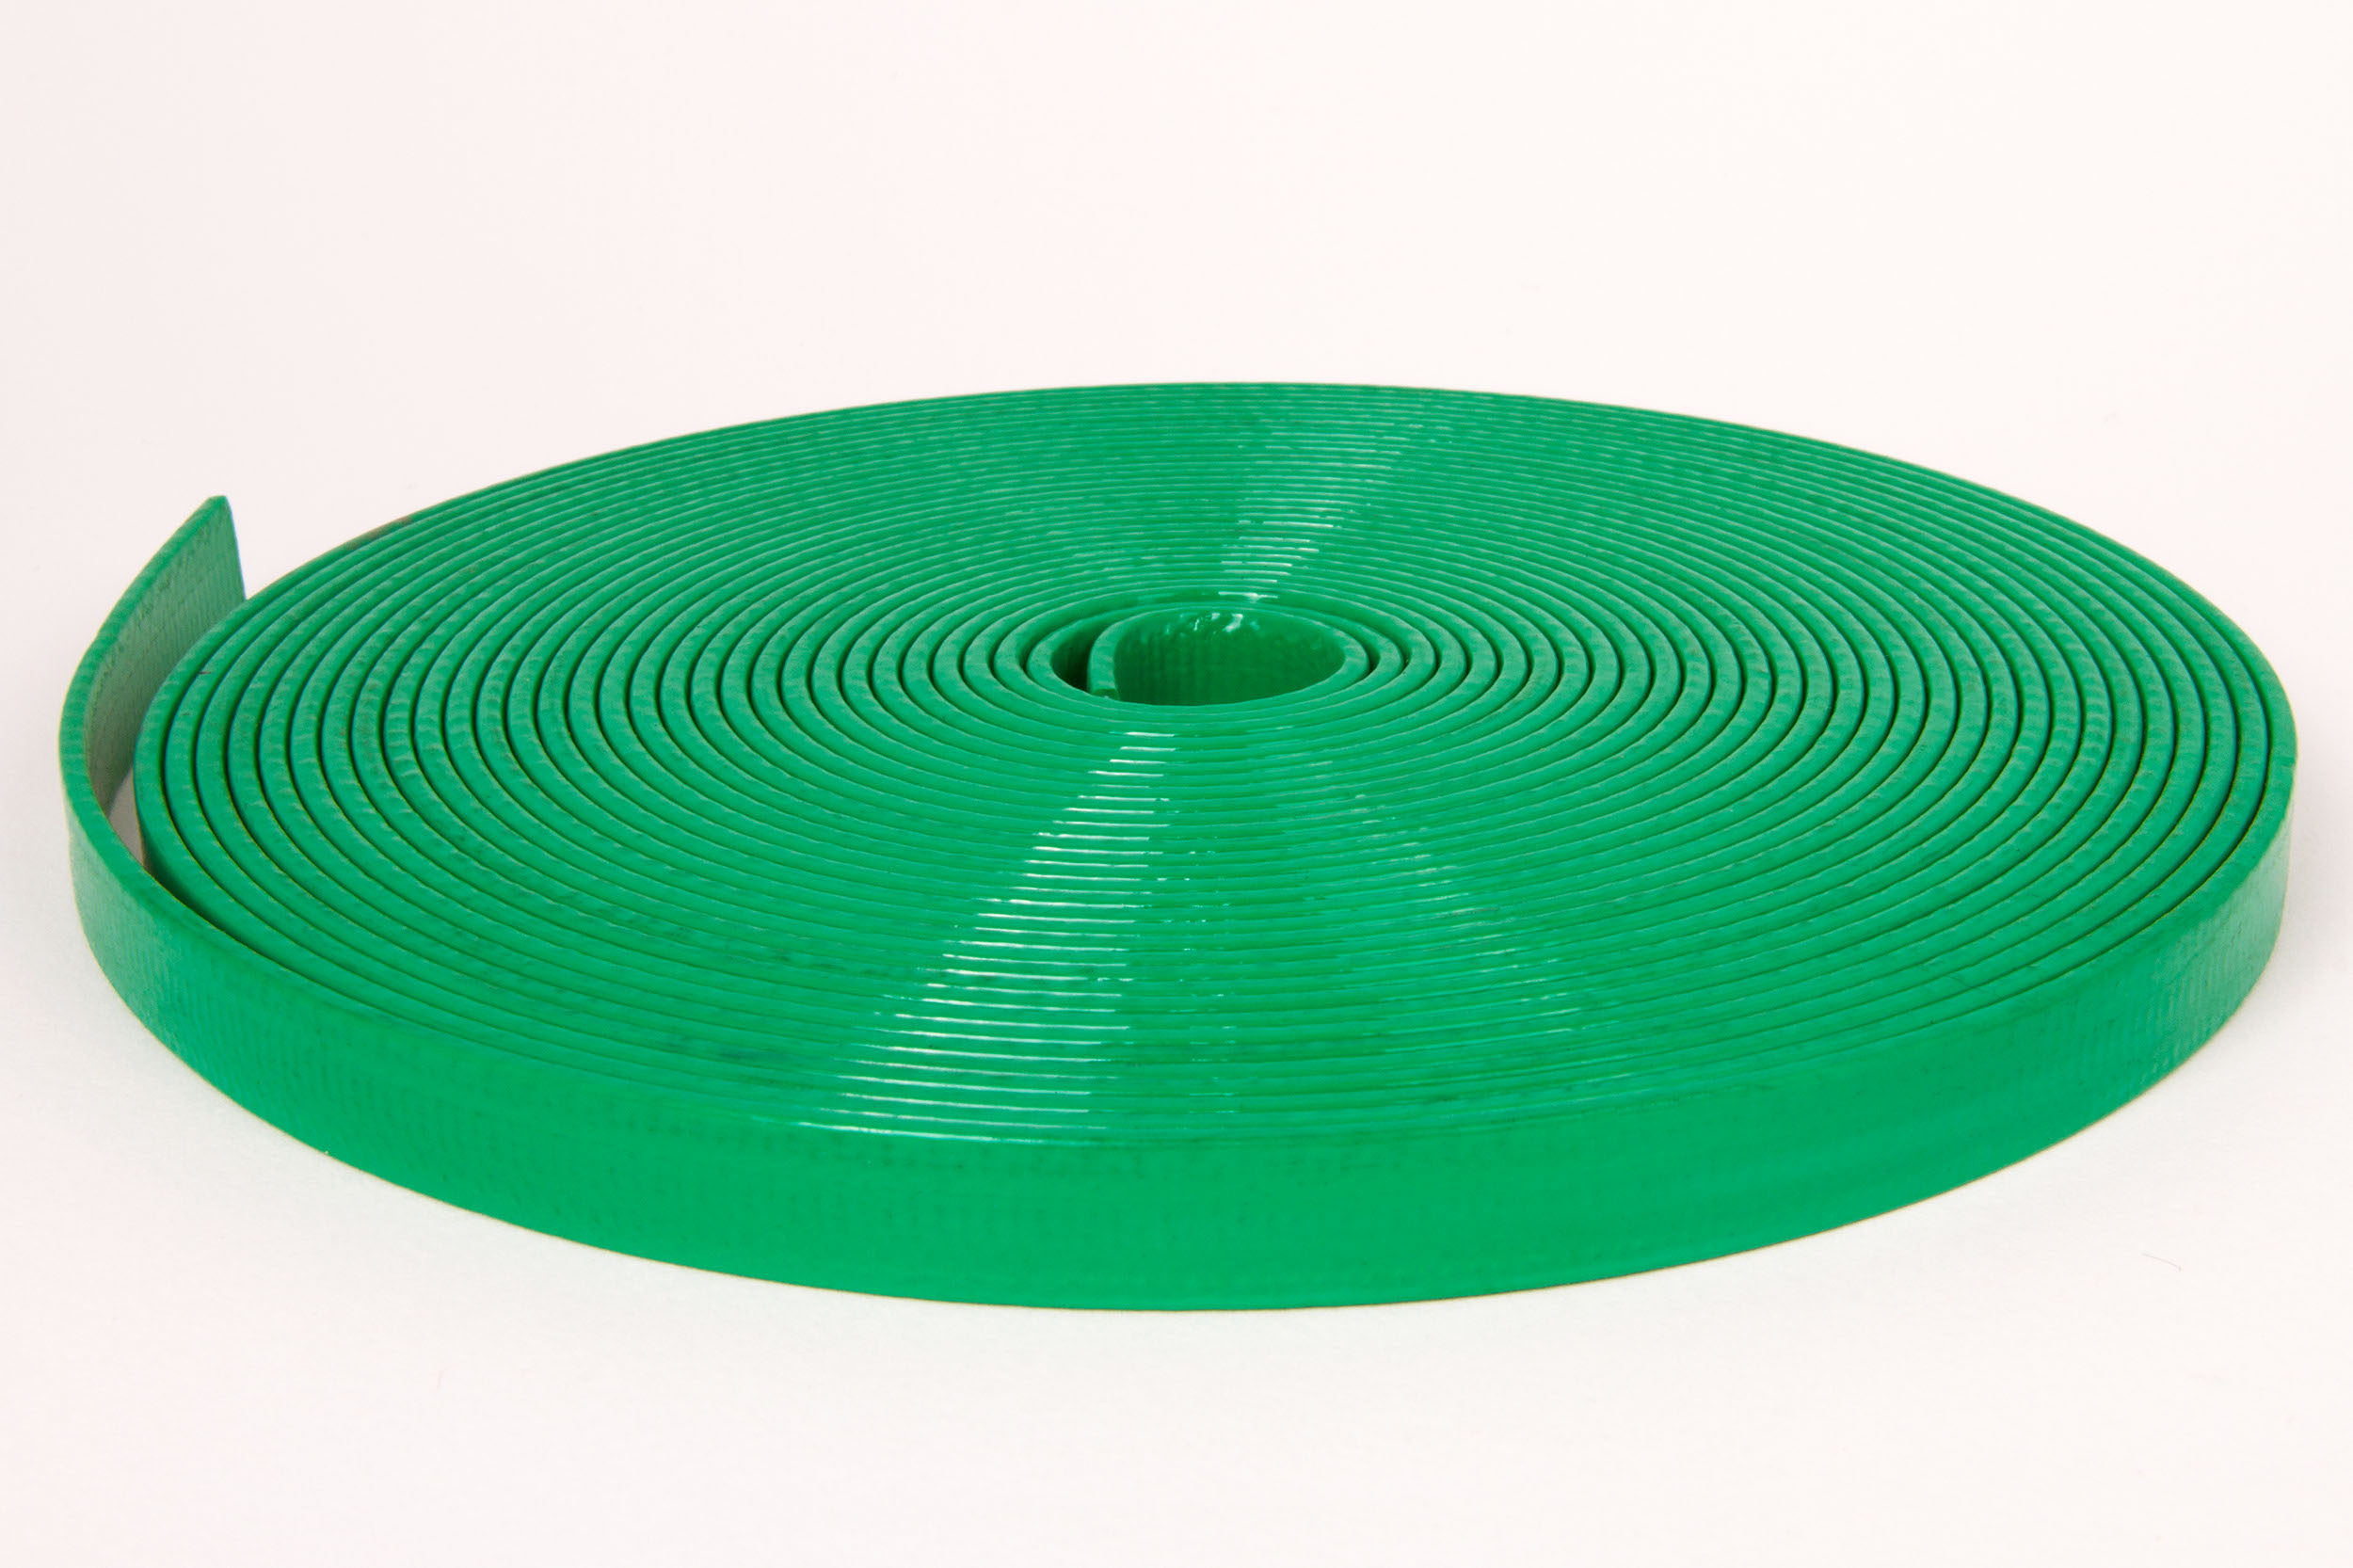 PVC-Coated-Webbing-12mm-Green 01.jpg